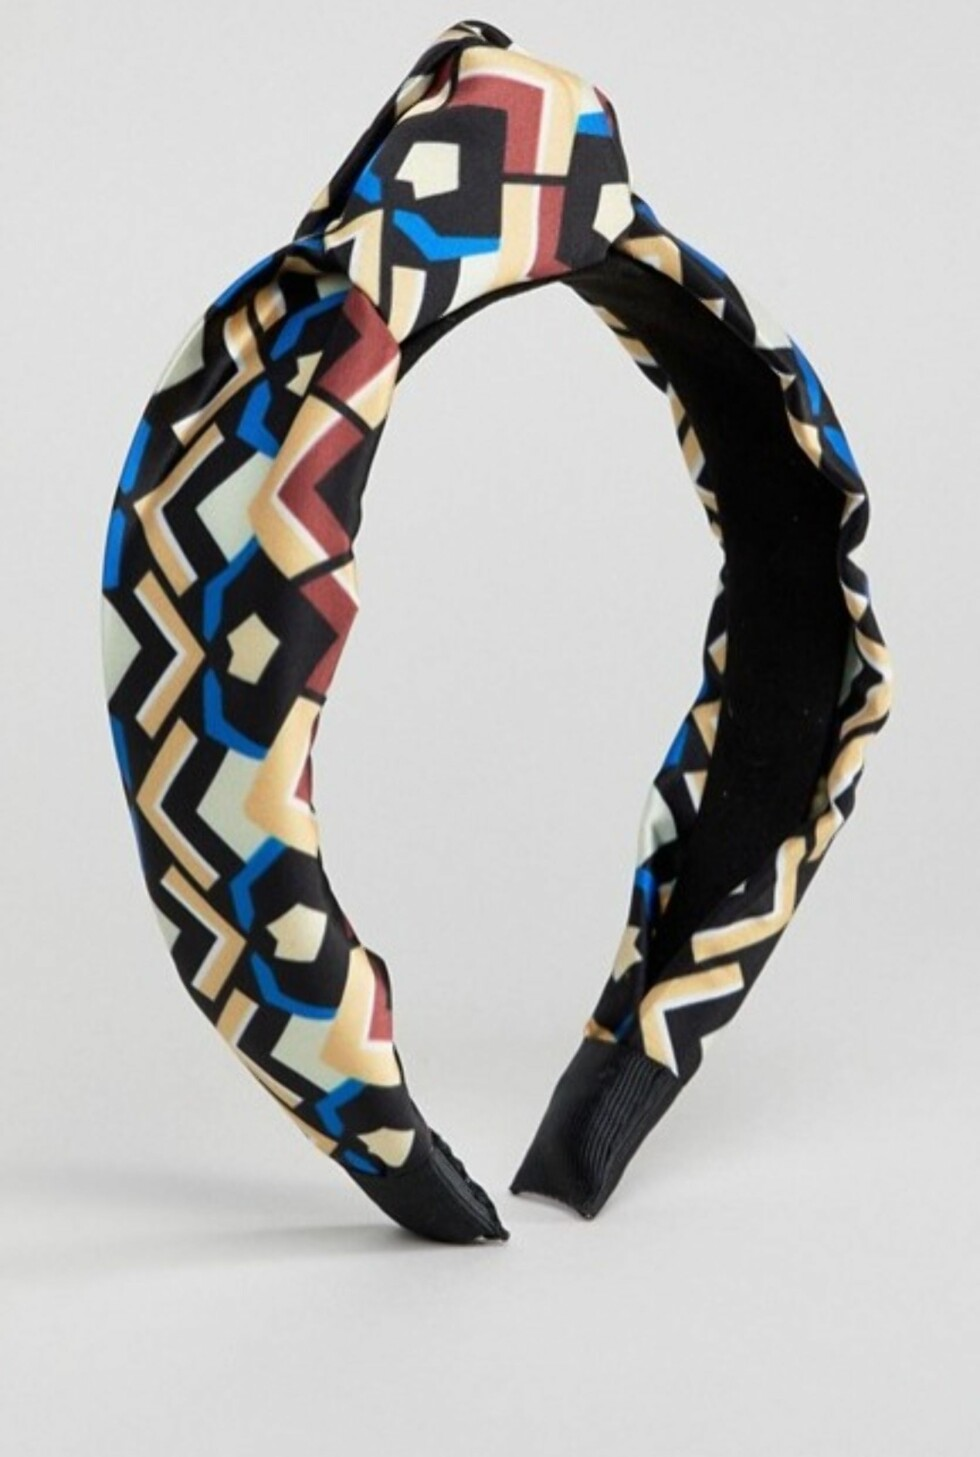 Hårbøyle fra Asos |100,-| http://www.asos.com/asos/asos-design-chunky-pattern-knot-headband/prd/9480238?clr=multi&SearchQuery=&cid=11412&gridcolumn=3&gridrow=2&gridsize=4&pge=2&pgesize=72&totalstyles=224